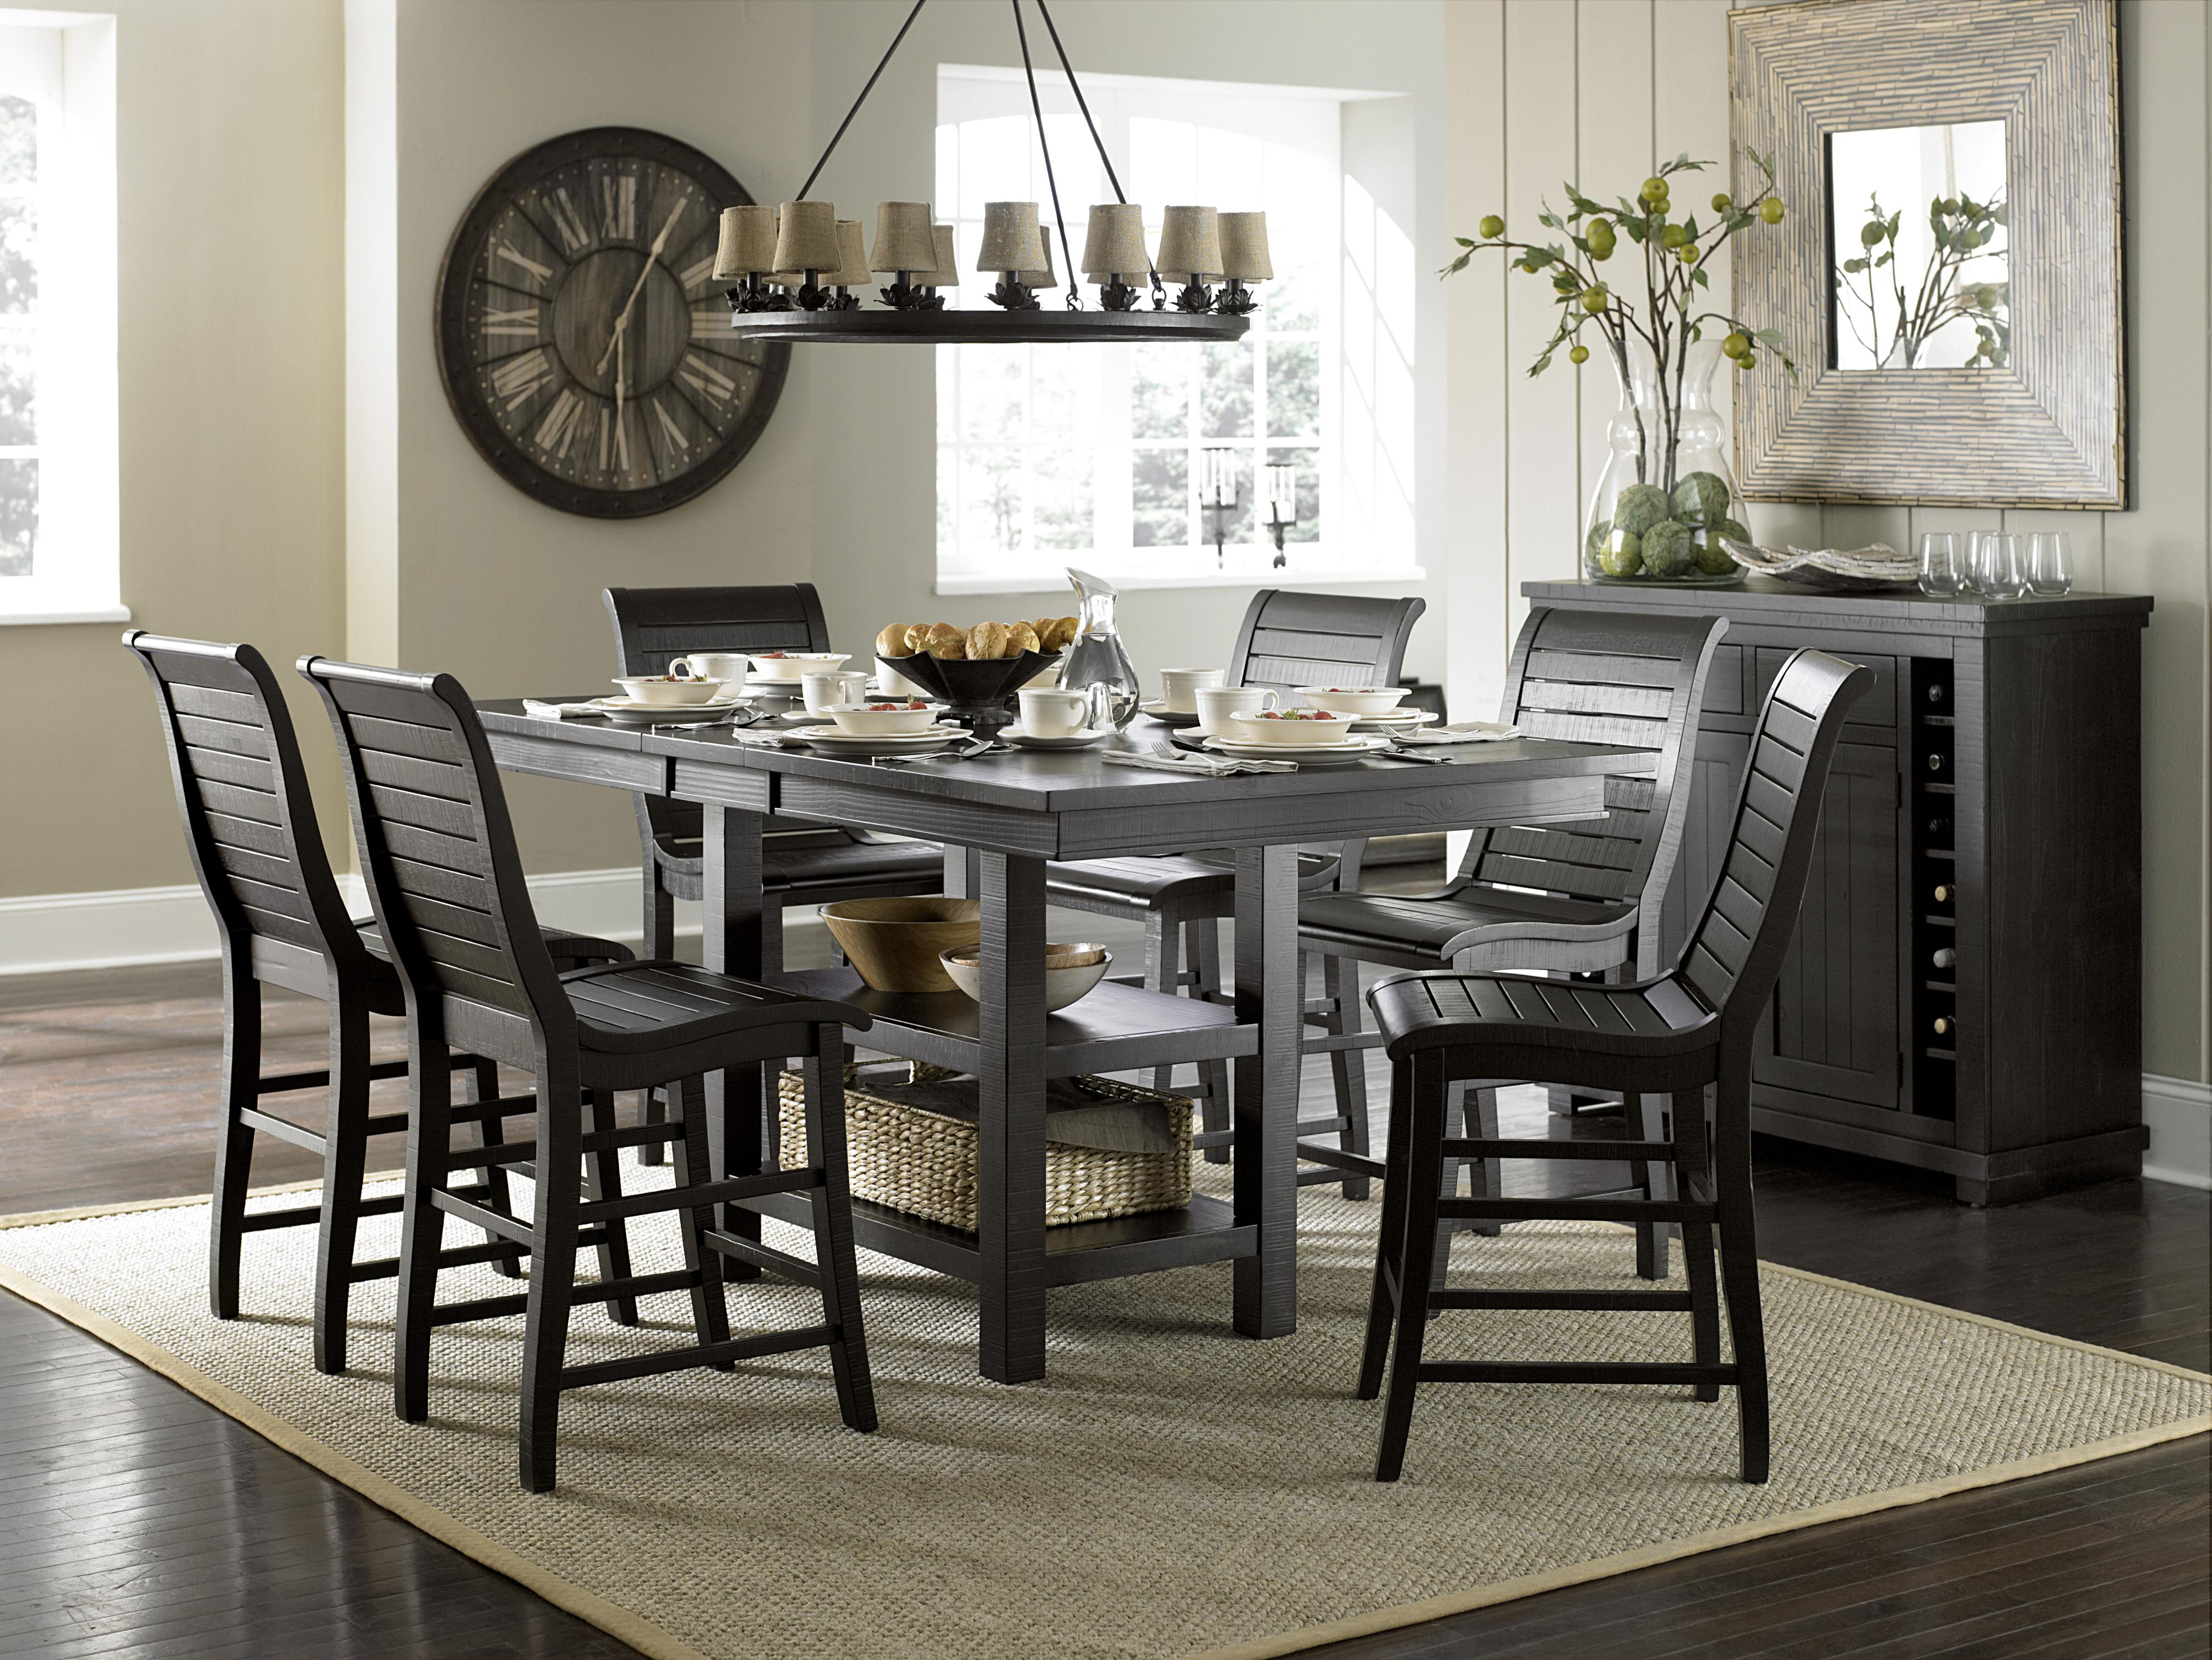 Progressive Furniture Willow Dining 5-Piece Round Counter Height Table Set with Uph. Counter Chairs | Wayside Furniture | Pub Table and Stool Sets & Progressive Furniture Willow Dining 5-Piece Round Counter Height ...